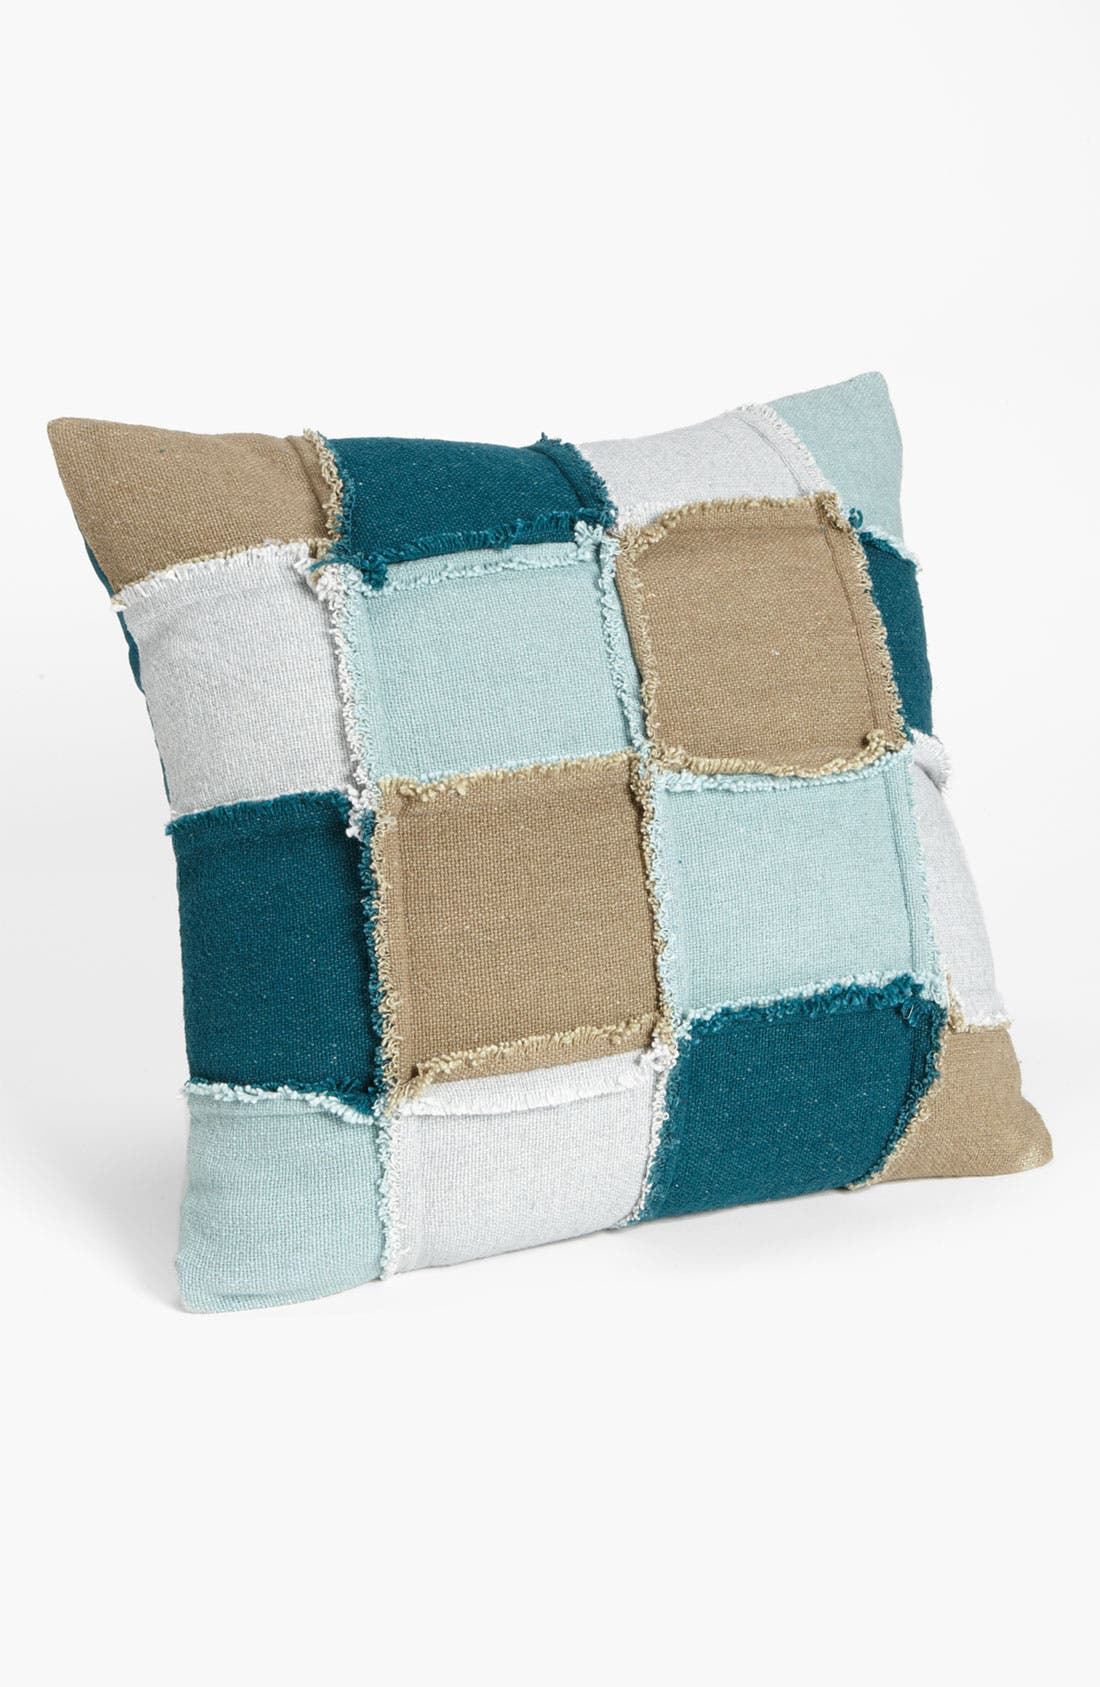 Alternate Image 1 Selected - Nordstrom at Home 'Patchwork' Pillow Cover